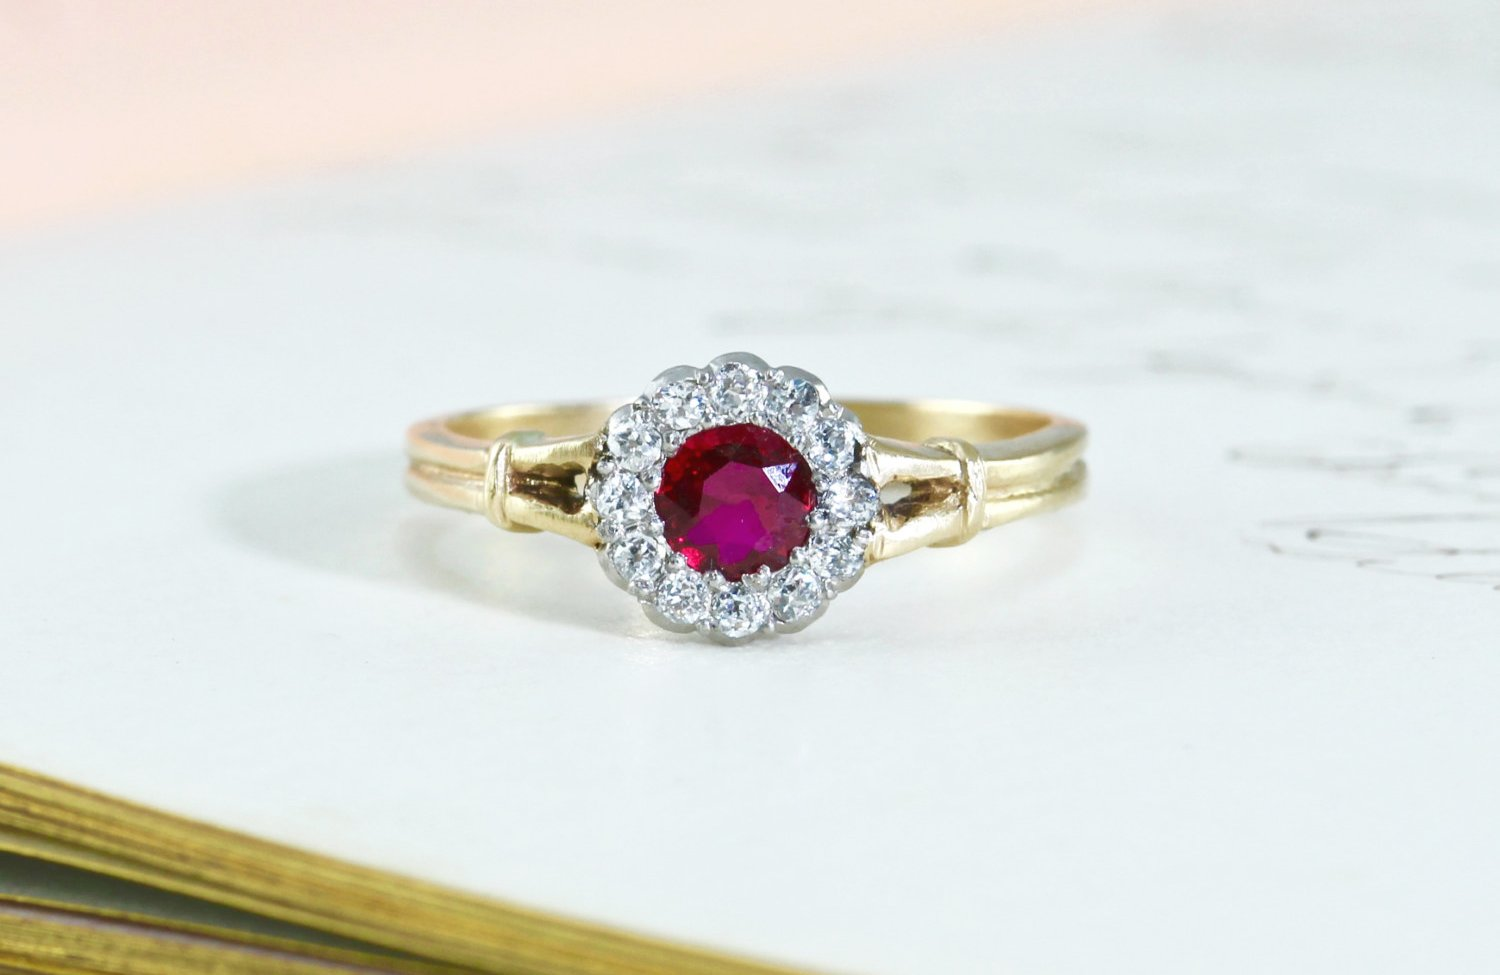 How to Tell the Difference Between Ruby and Pink Sapphire